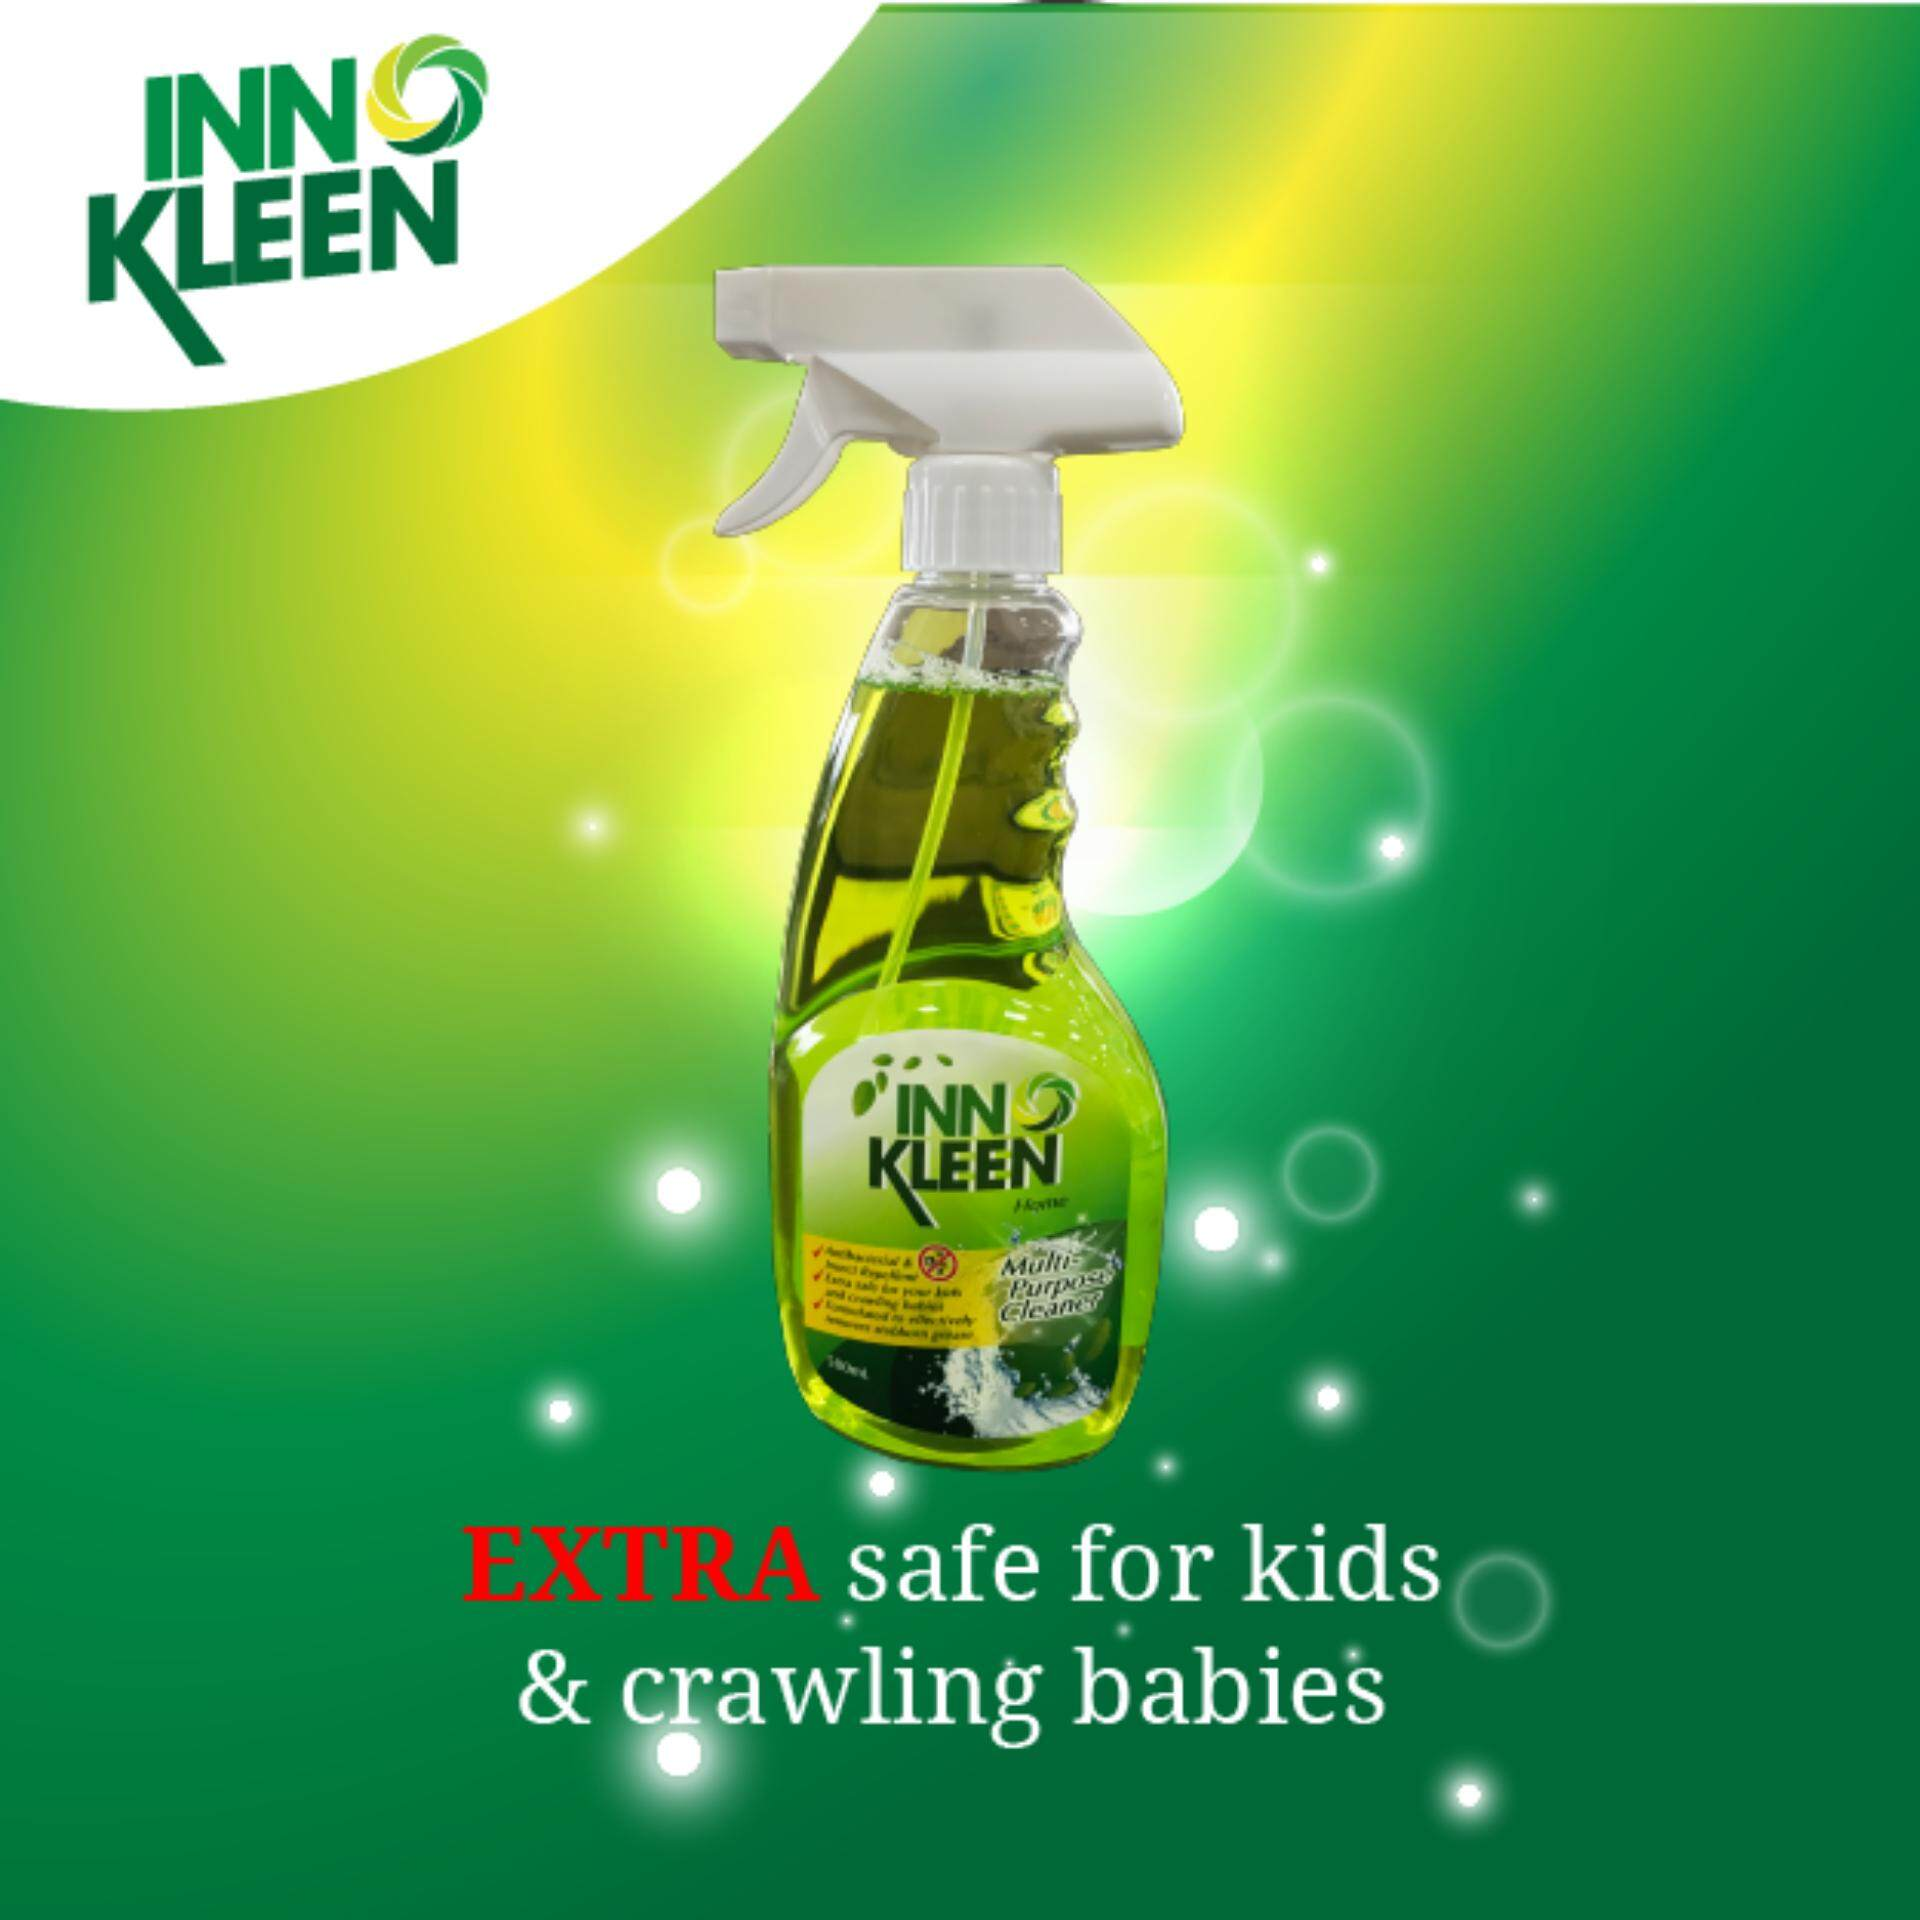 [VALUE PACK] Set of 2 INNOKLEEN HOME Multi Purpose Cleaner -Antibacterial & Insect Repellent, Safe for Kids & Babies 500ml